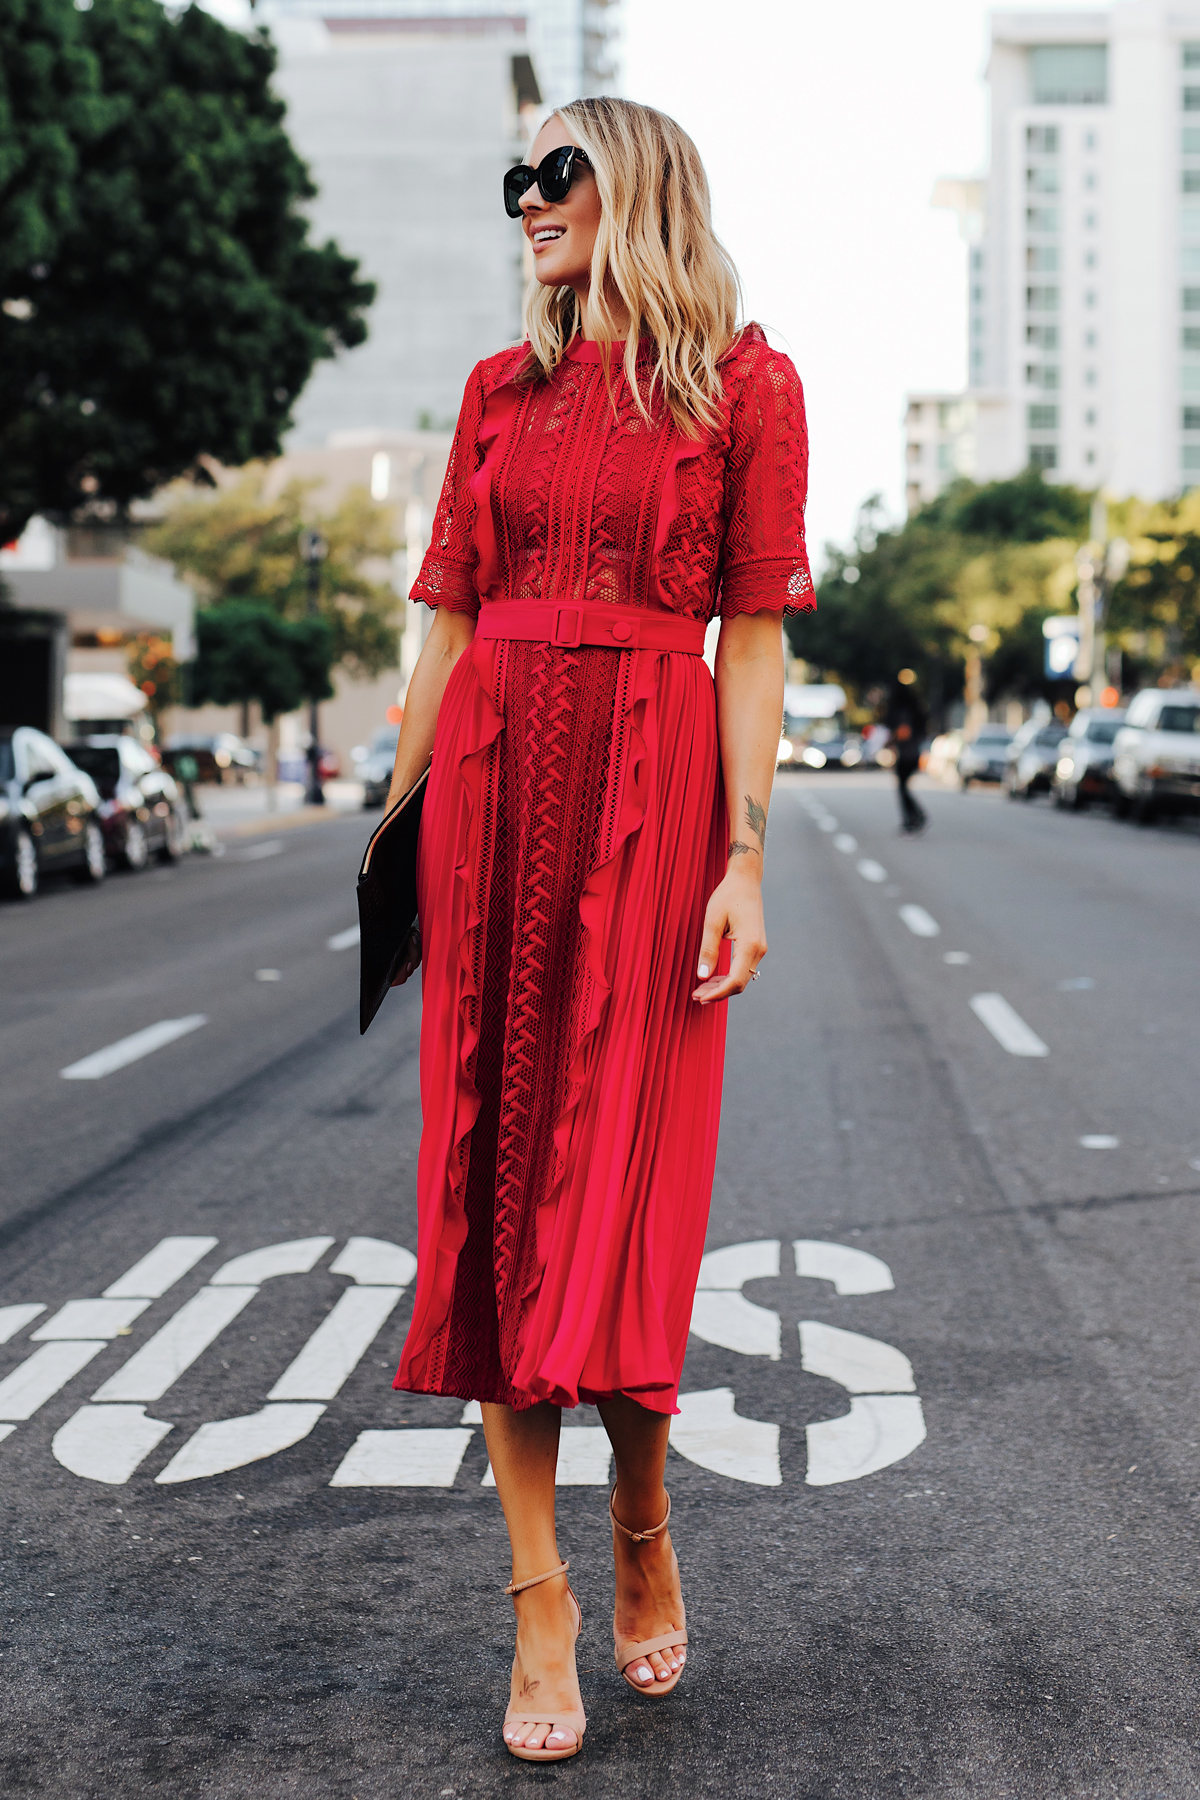 Fashion Jackson Wearing Self Portrait Red Short Sleeve Lace Midi Dress Nude Ankle Strap Heeled Sandals